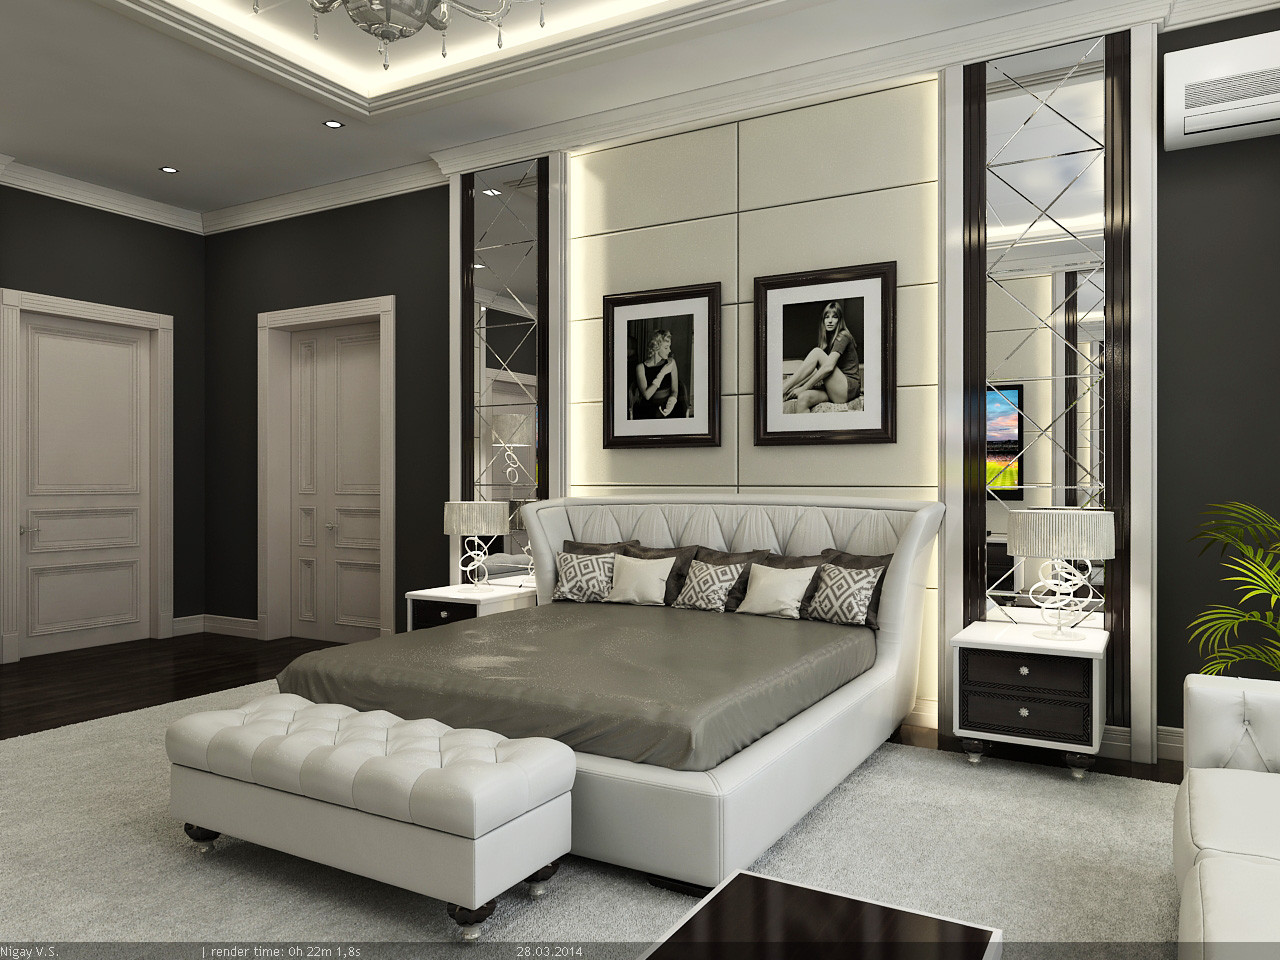 Interior master bedroom 3d model - Model designer interiors ...